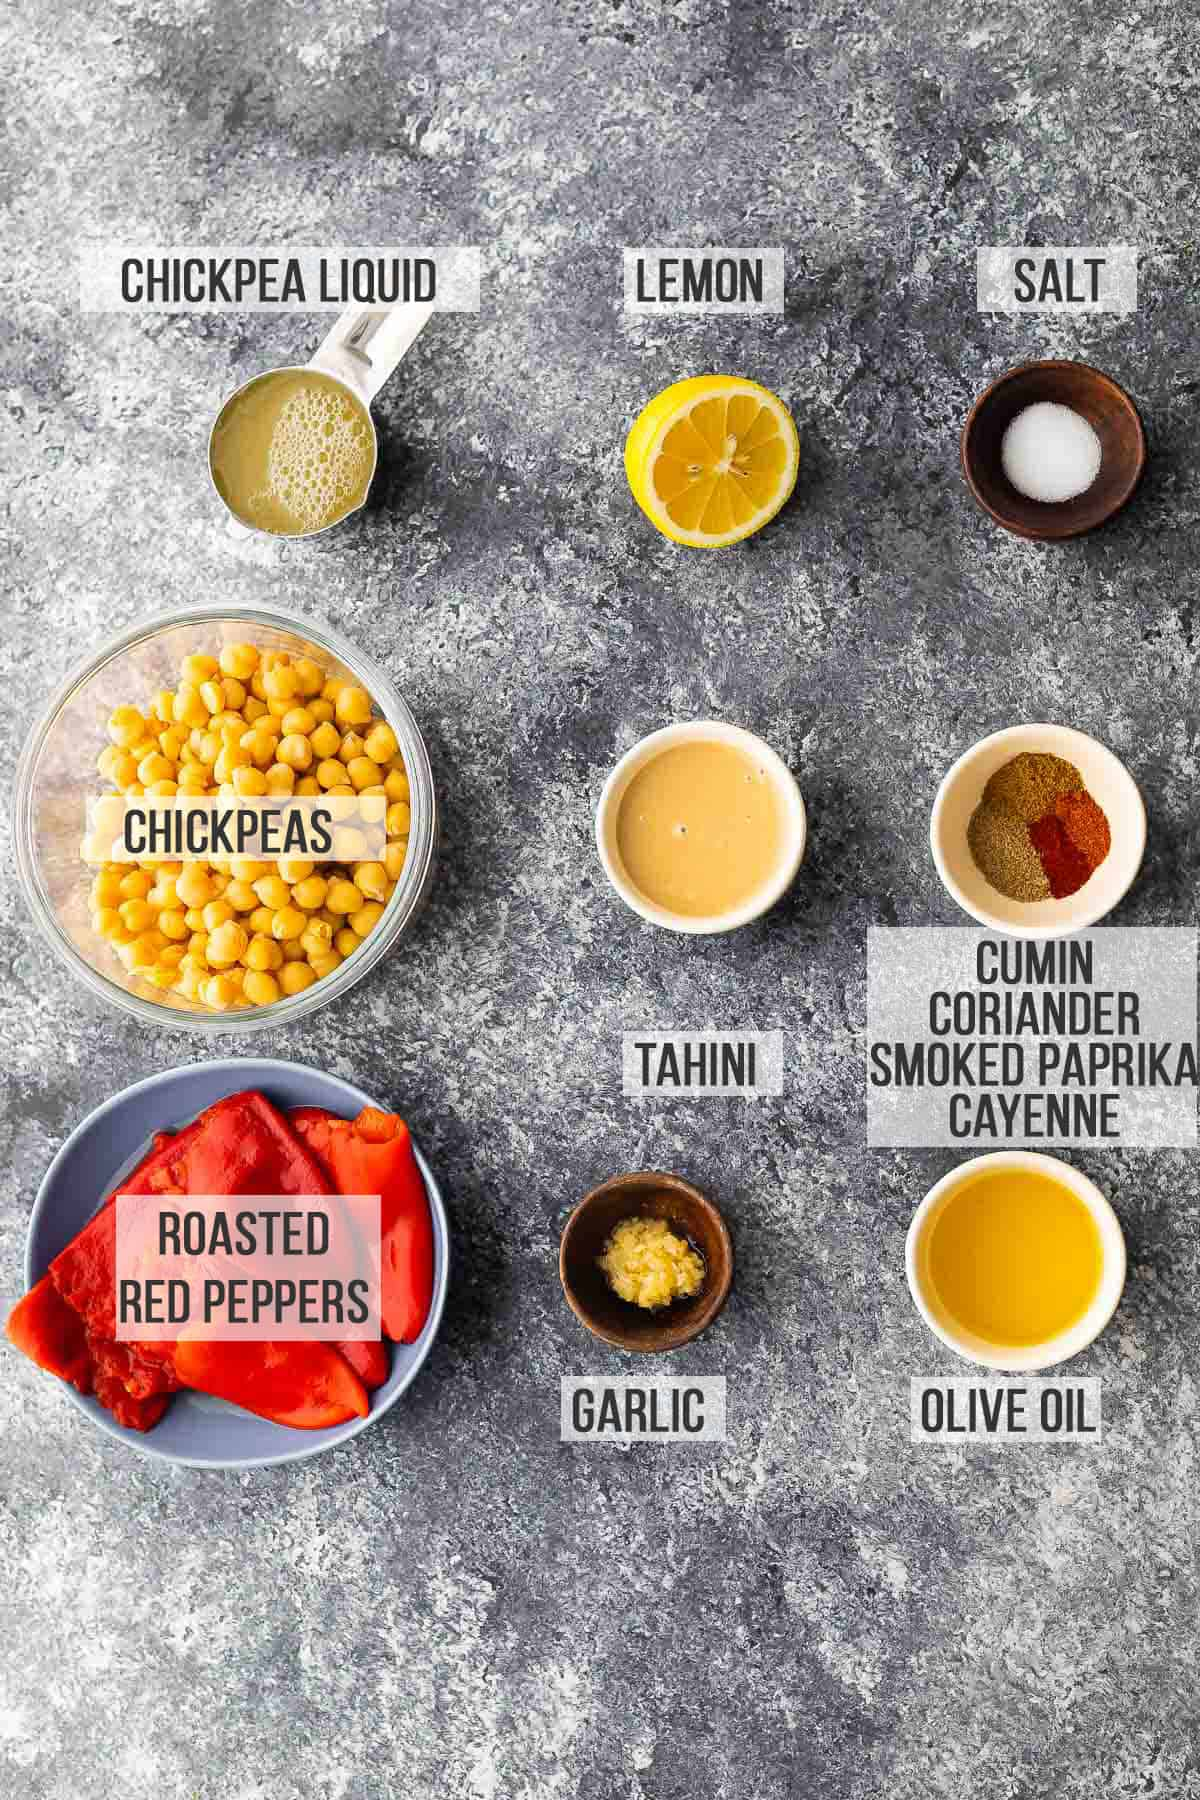 Labeled ingredients for roasted hummus with red pepper